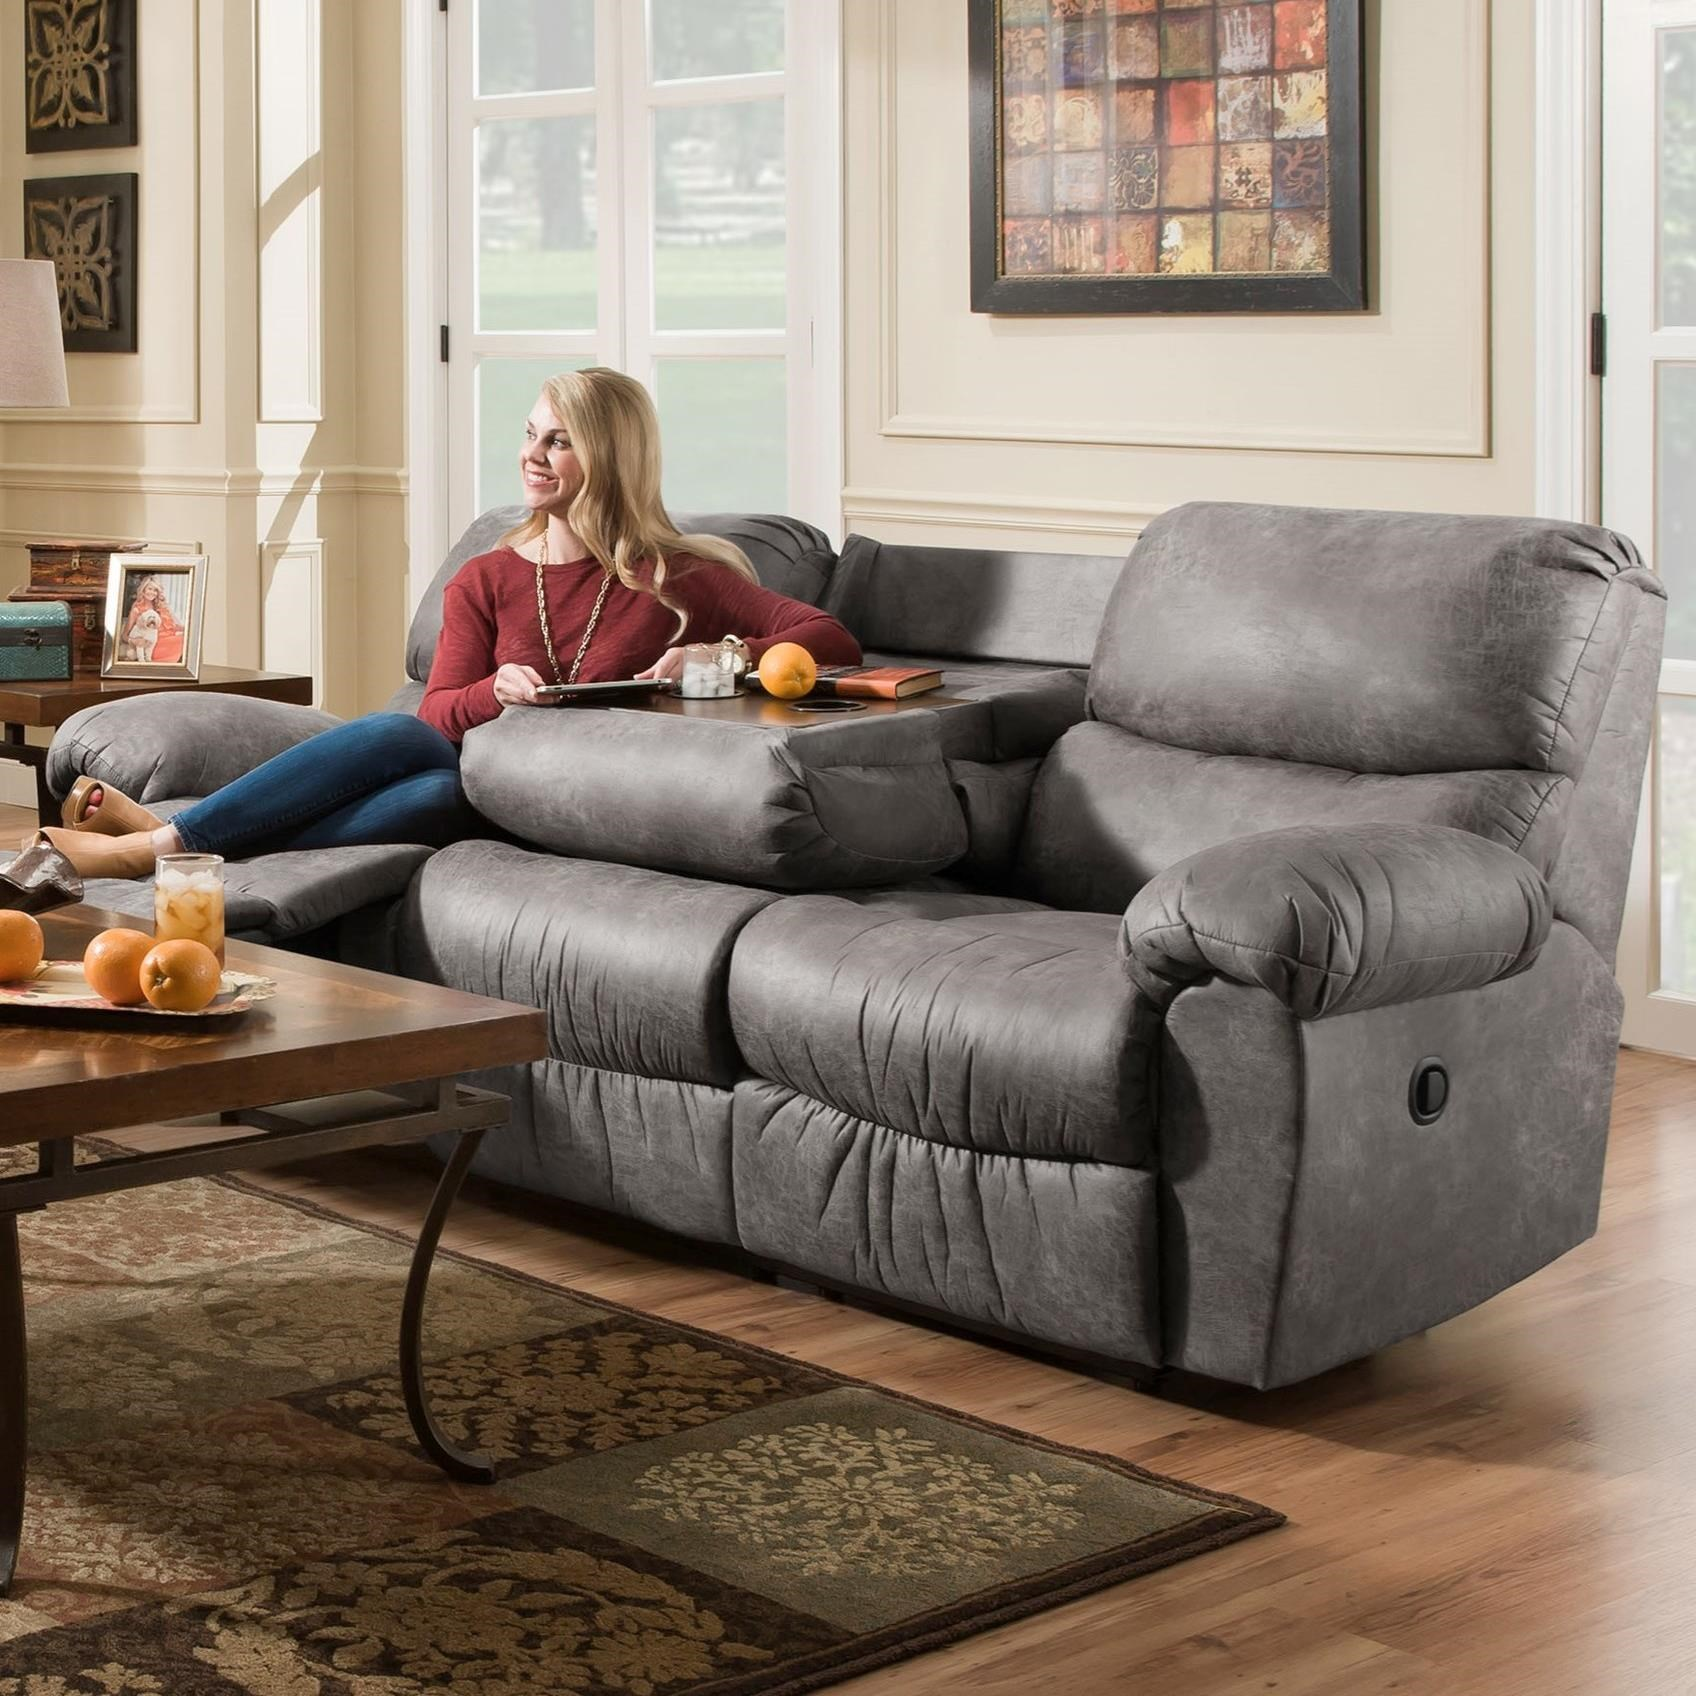 Peak Living Af310 Casual Power Reclining Sofa With Fold Down Center Table Prime Brothers Furniture Reclining Sofas